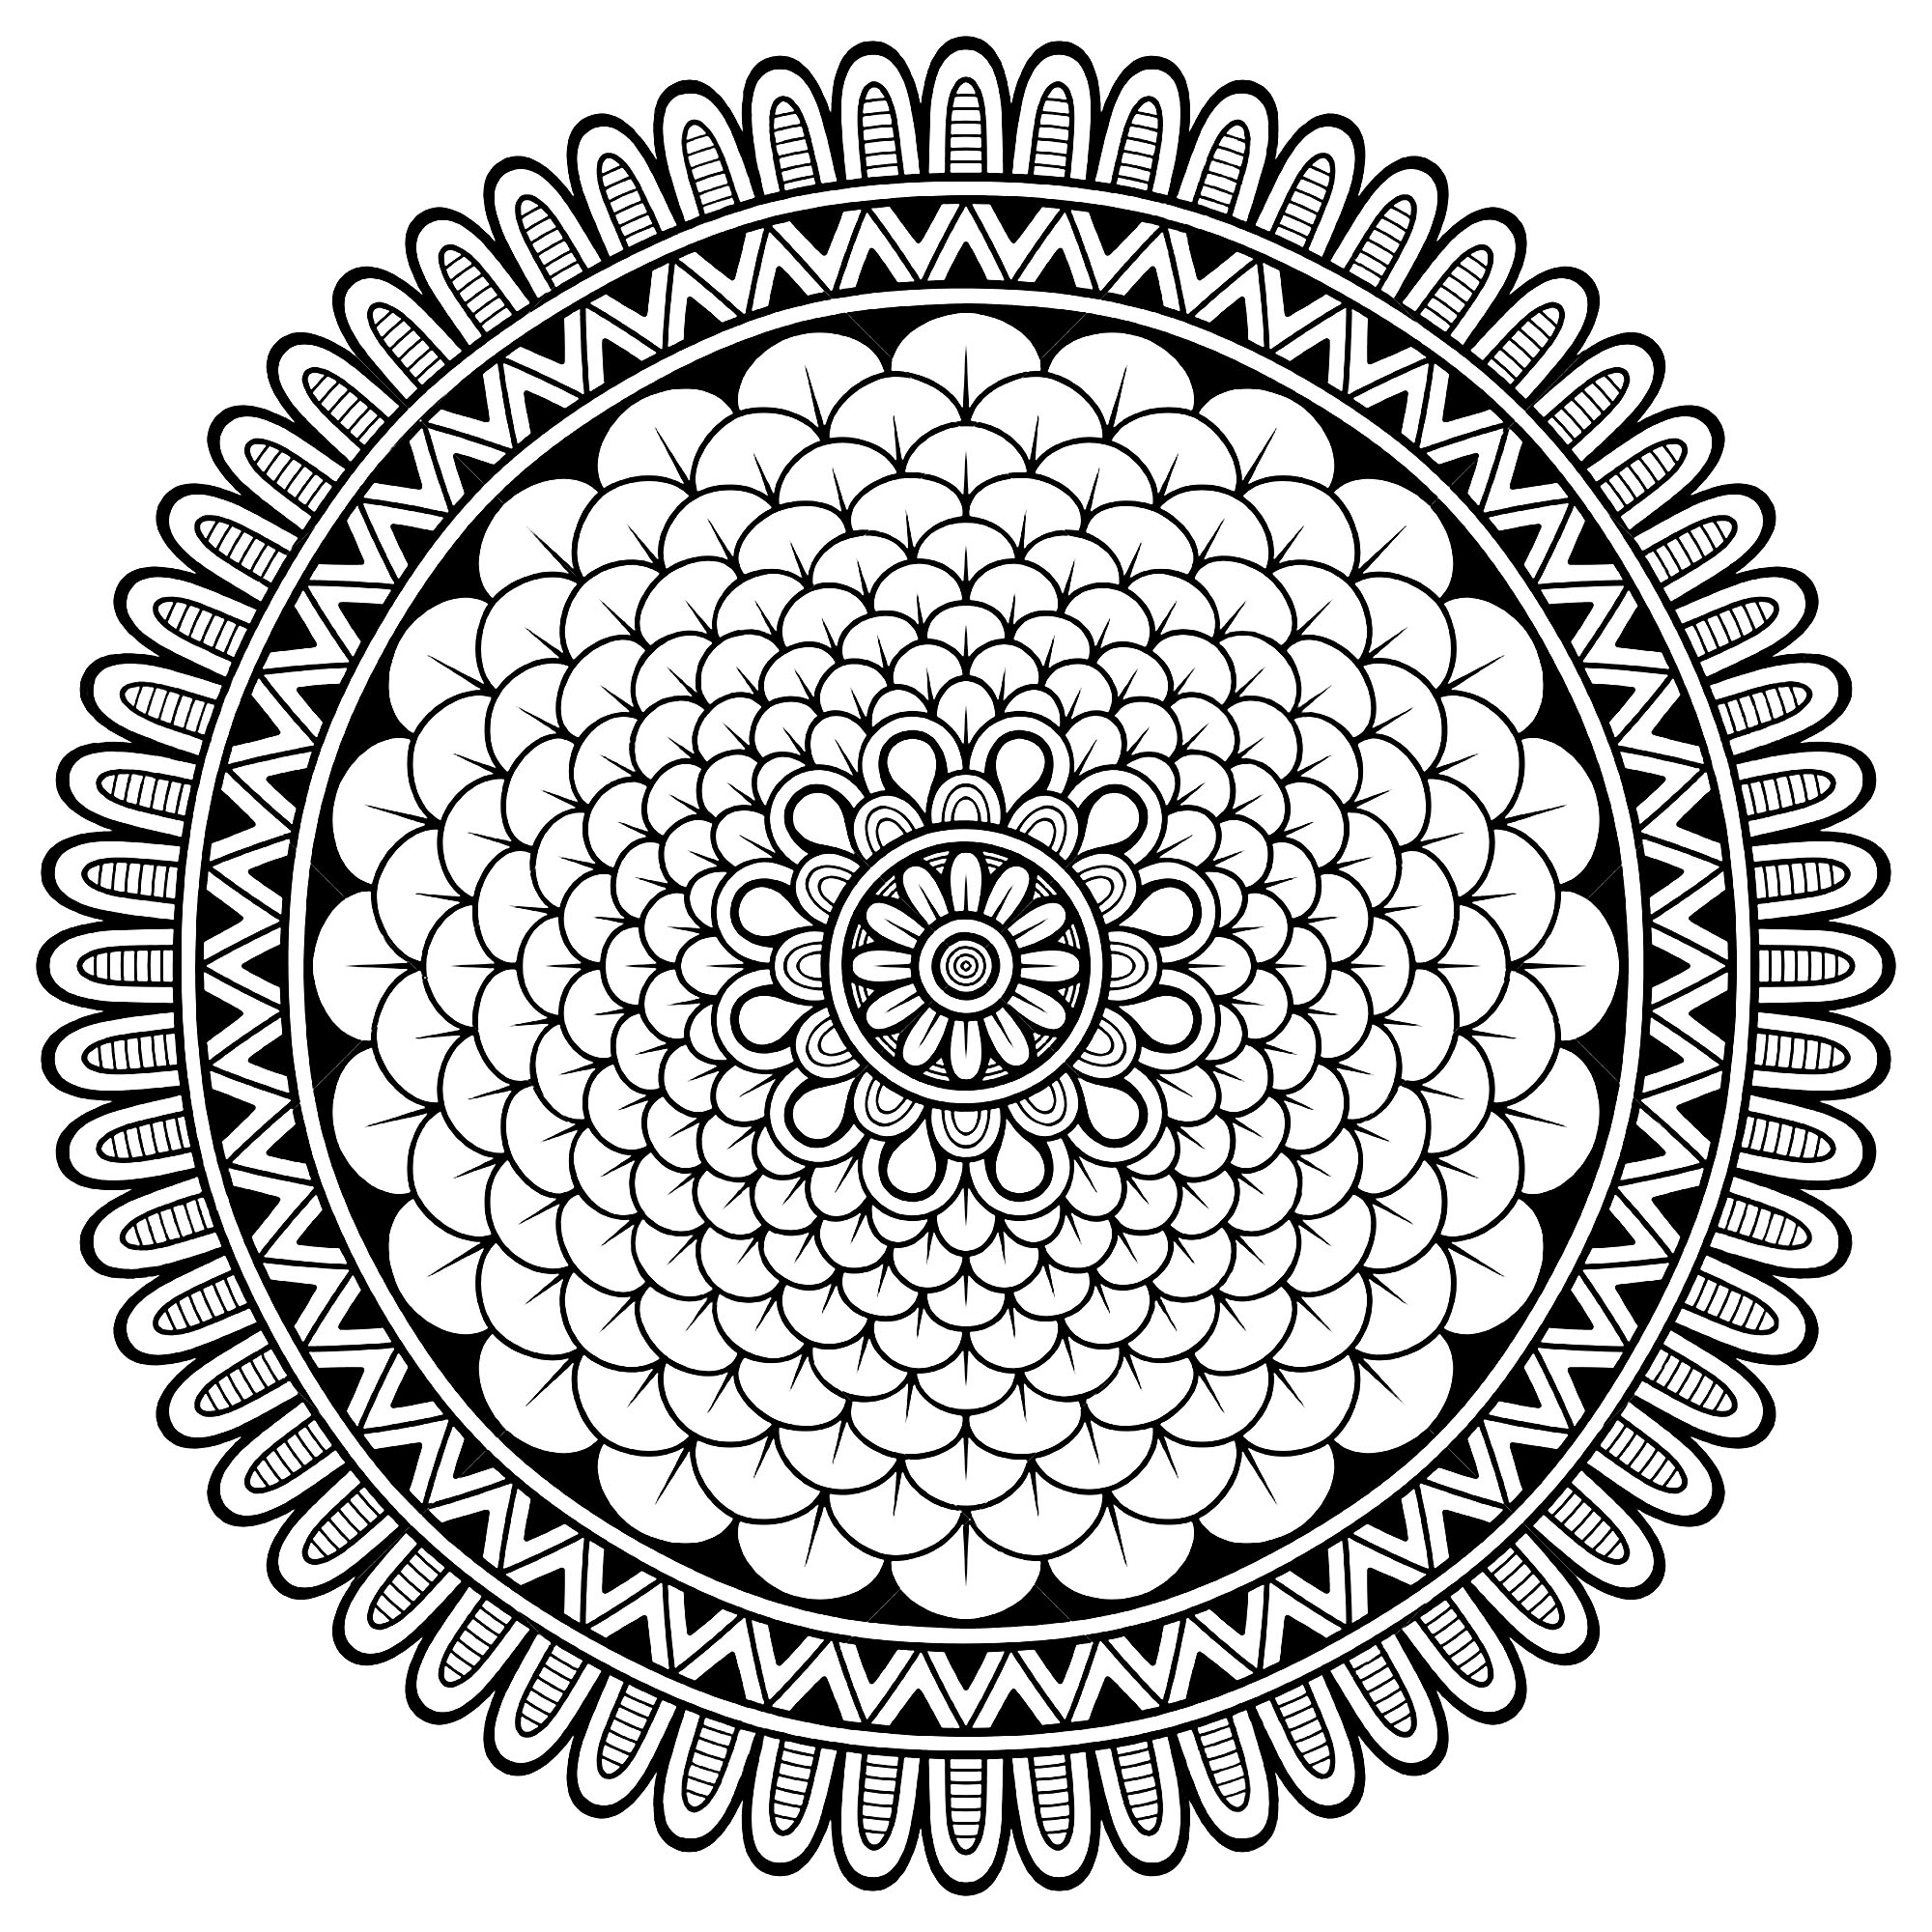 Many small details and little areas for a Mandala very original and harmonious. Do whatever it takes to get rid of any distractions that may interfere with your coloring.